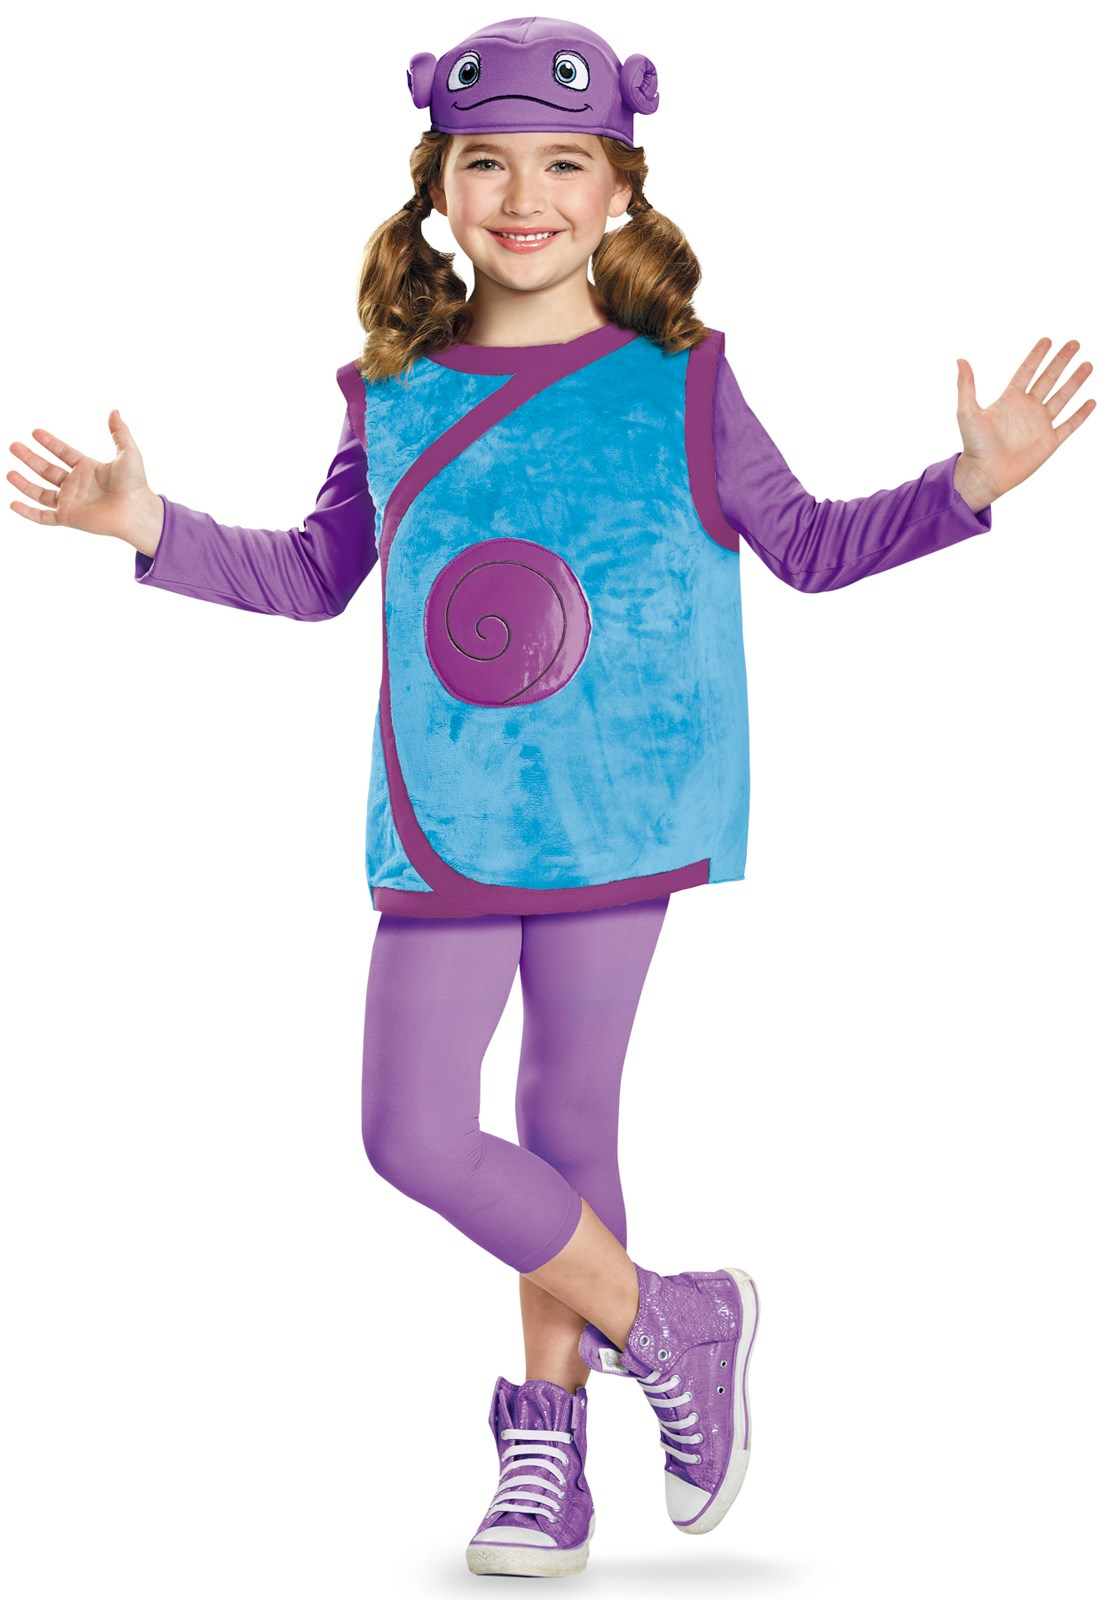 Dreamworks Home: Oh Deluxe Costume For Kids